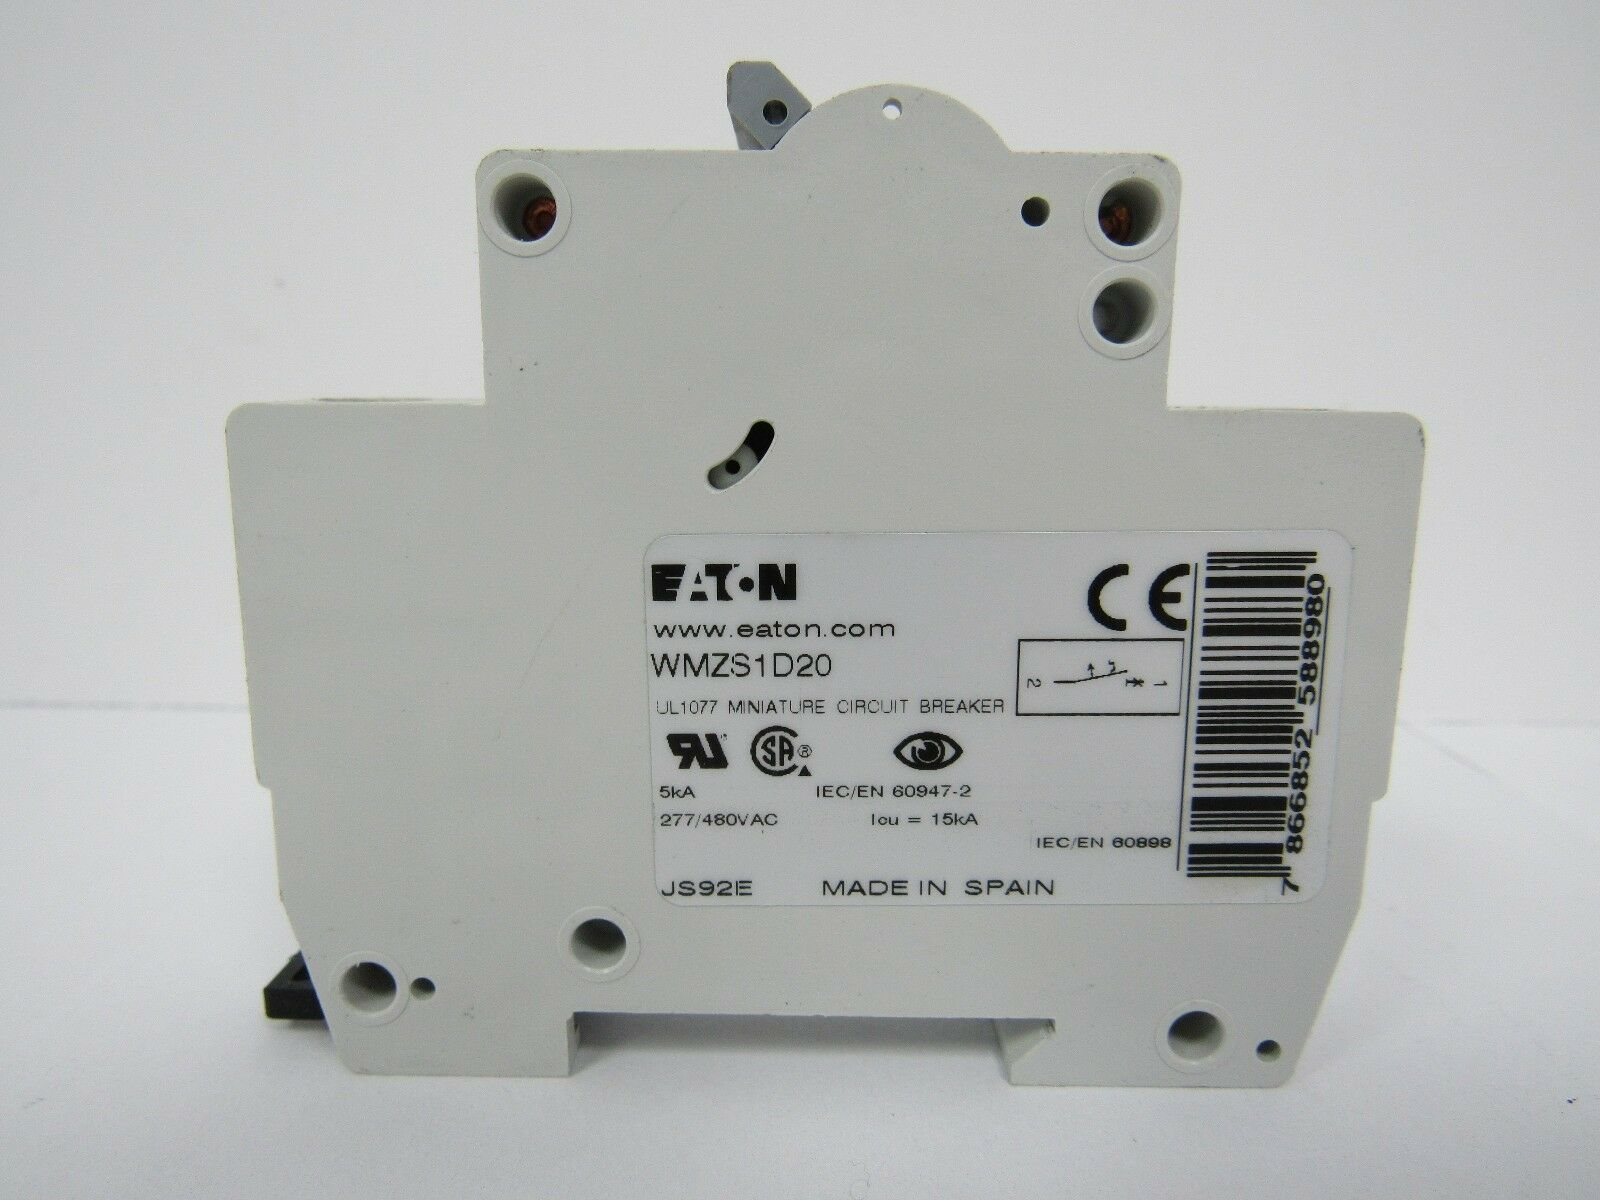 Eaton Miniature Circuit Breaker Wmzs1d20 20a 277 480vac Ebay Power 16 Amp Wifi Use